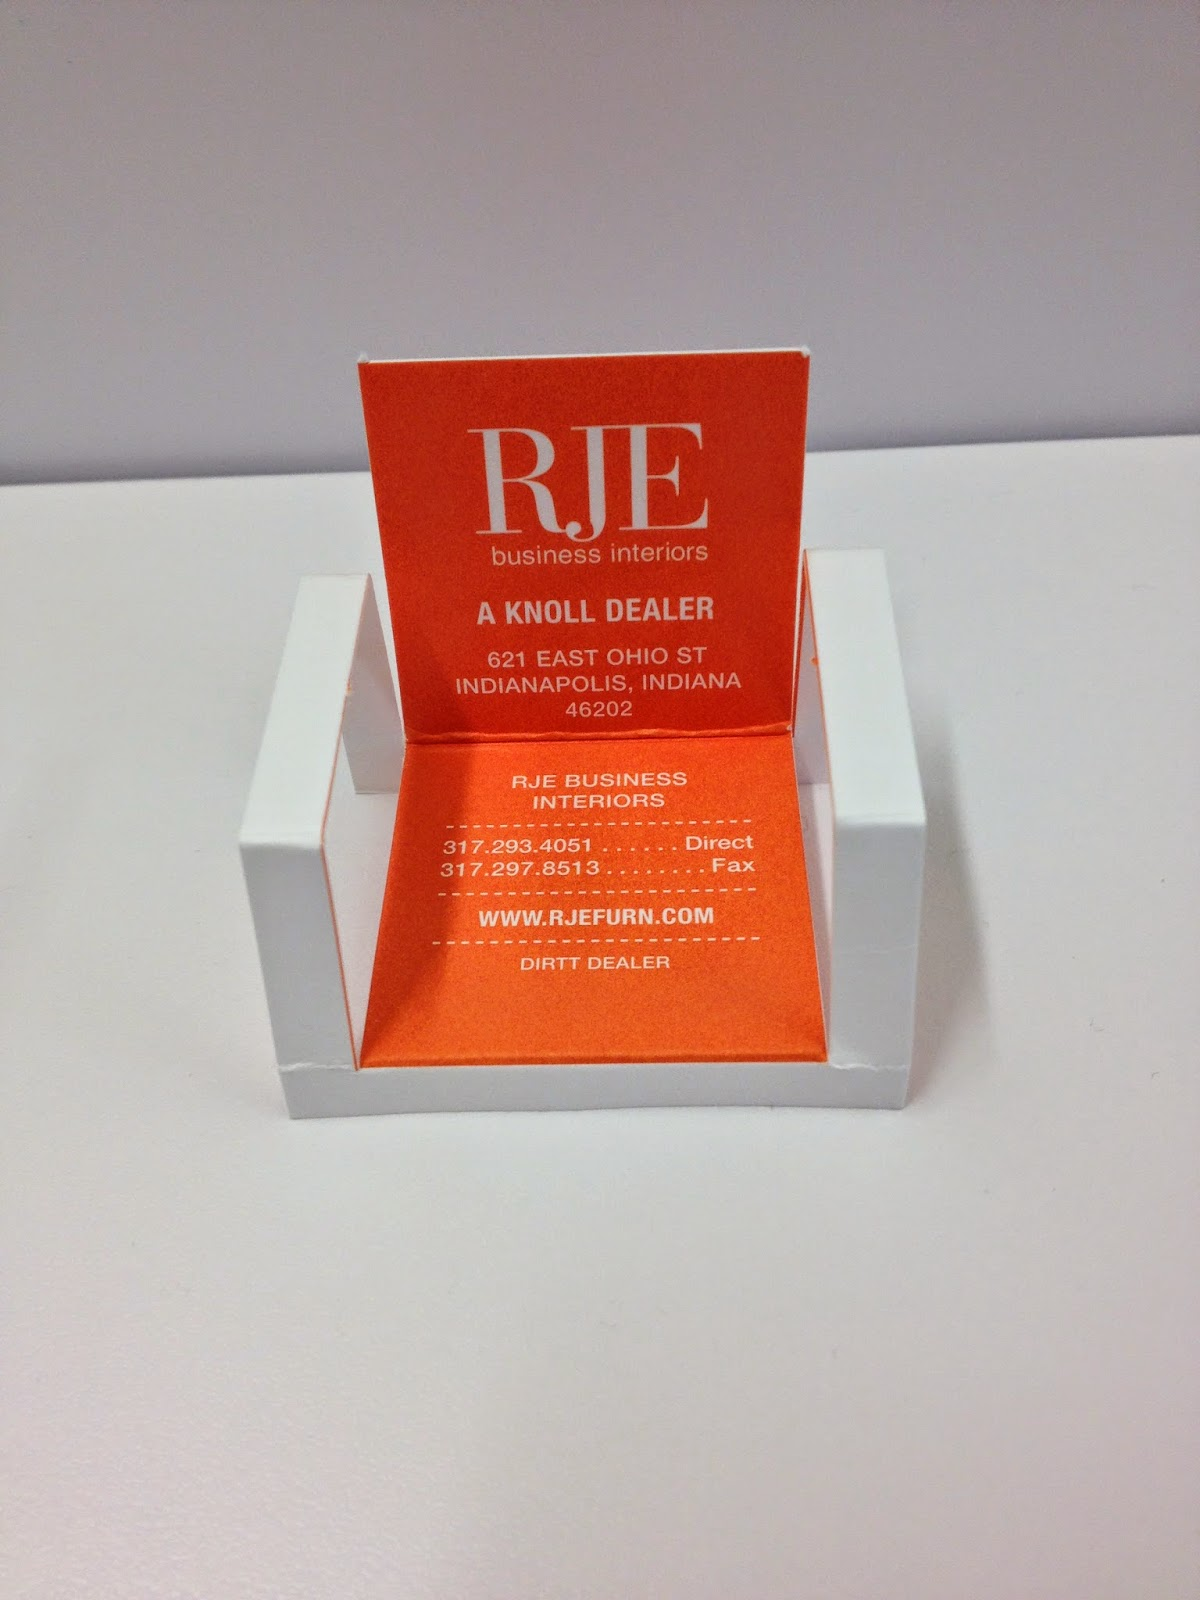 RJE Business Interiors: RJE New Business Card Design and Awards